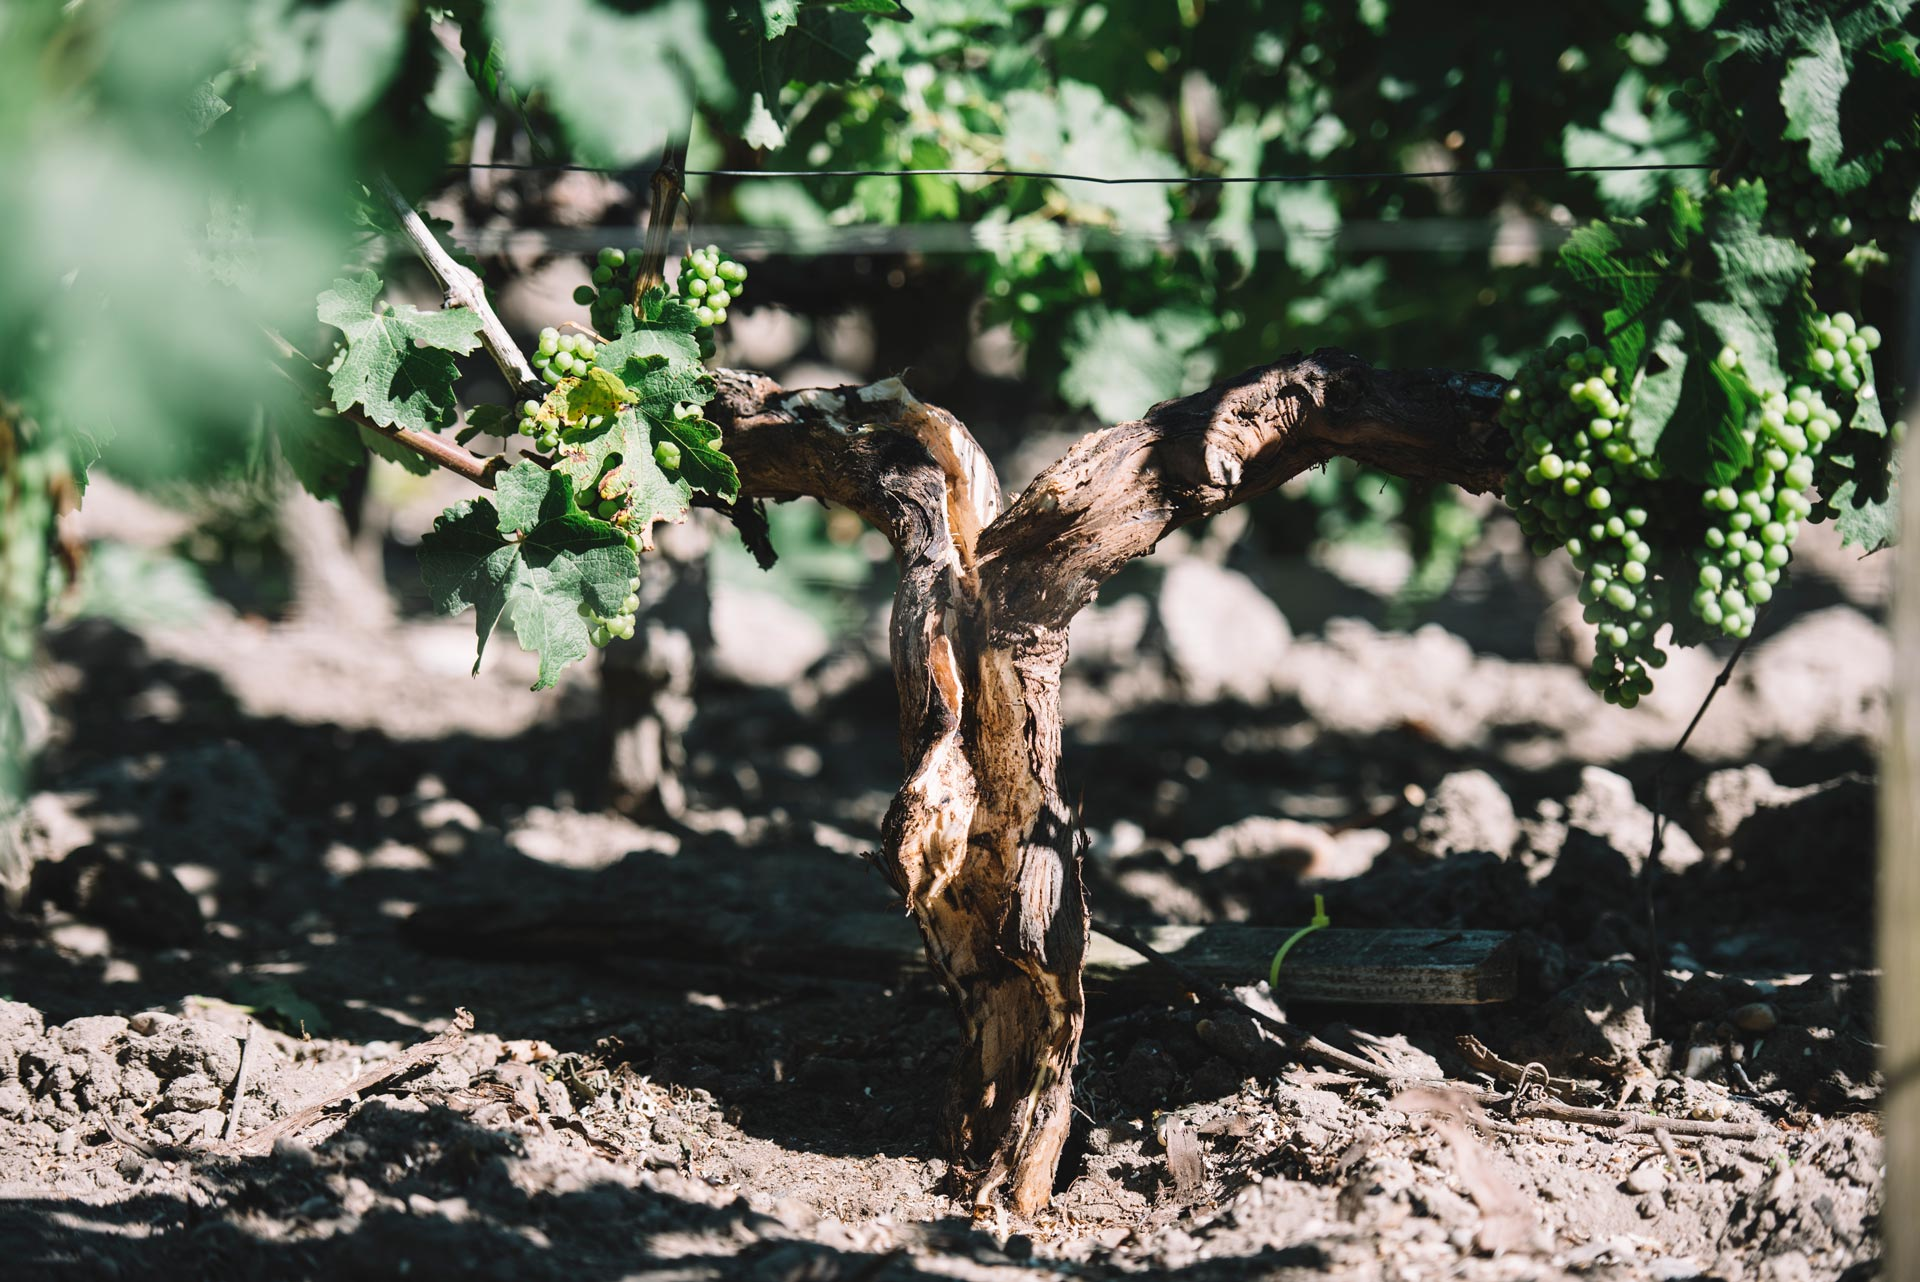 Guyot after treatment | Pauillac vineyards | Bordeaux